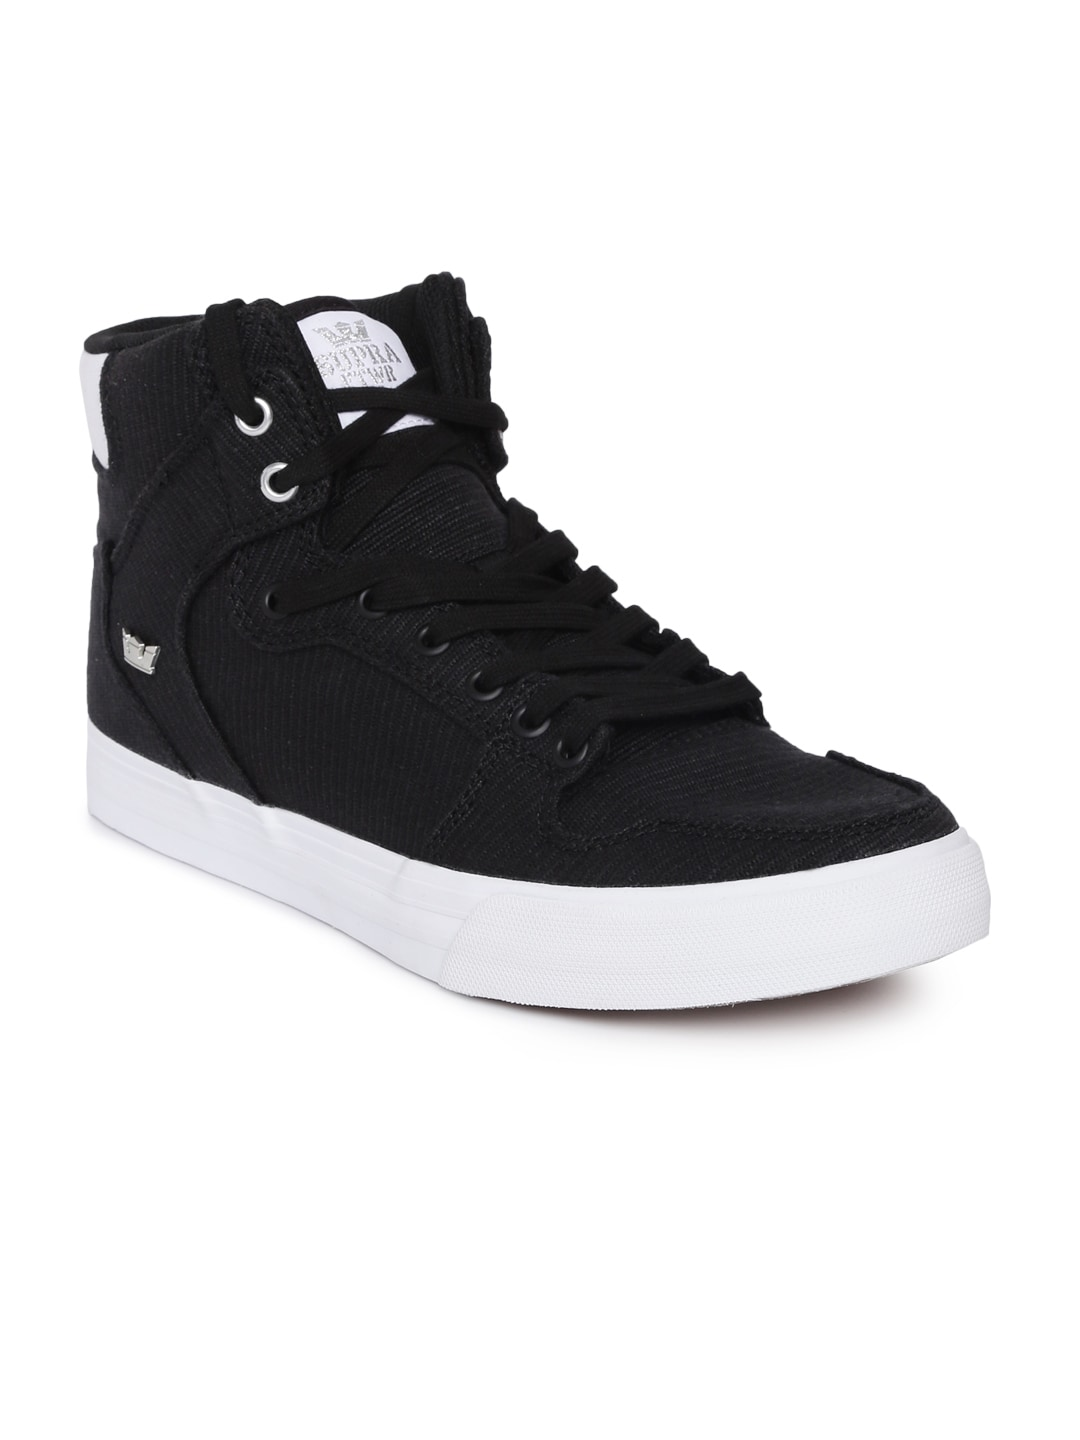 Supra High Tops - Buy Supra High Tops online in India fda7e139f